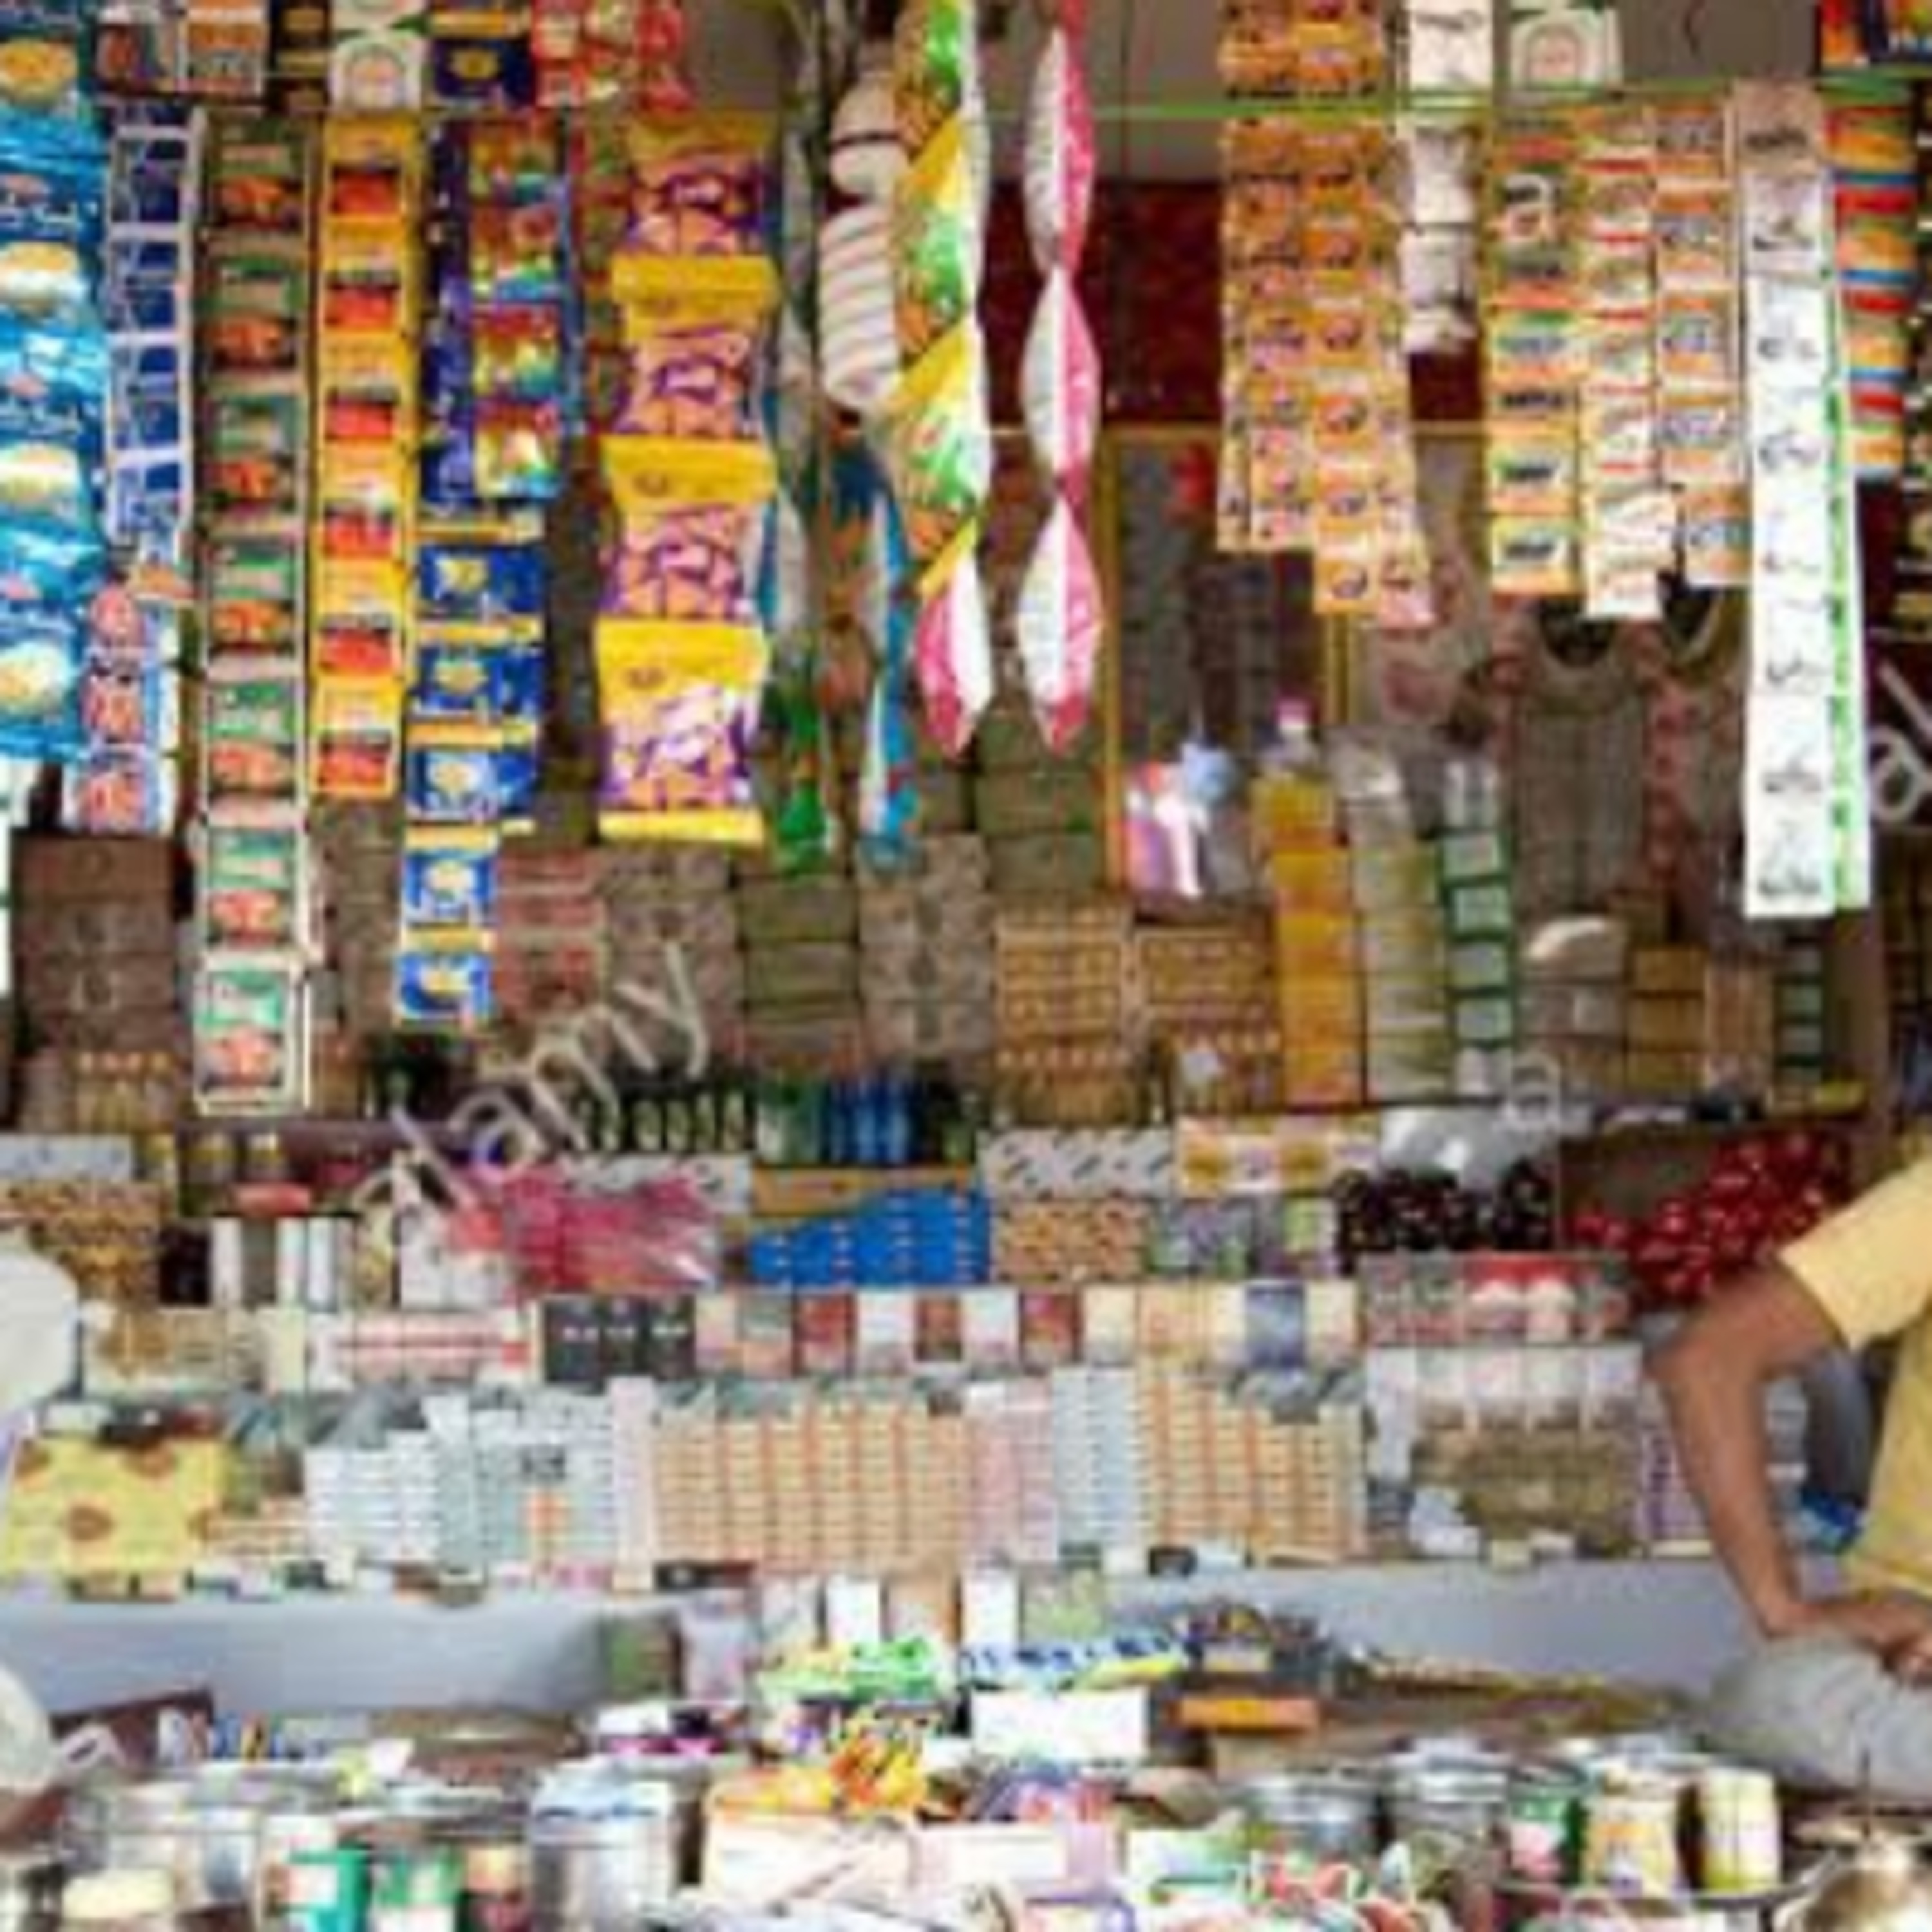 Rajasthan Government permit the sale of Paan and Tobacco